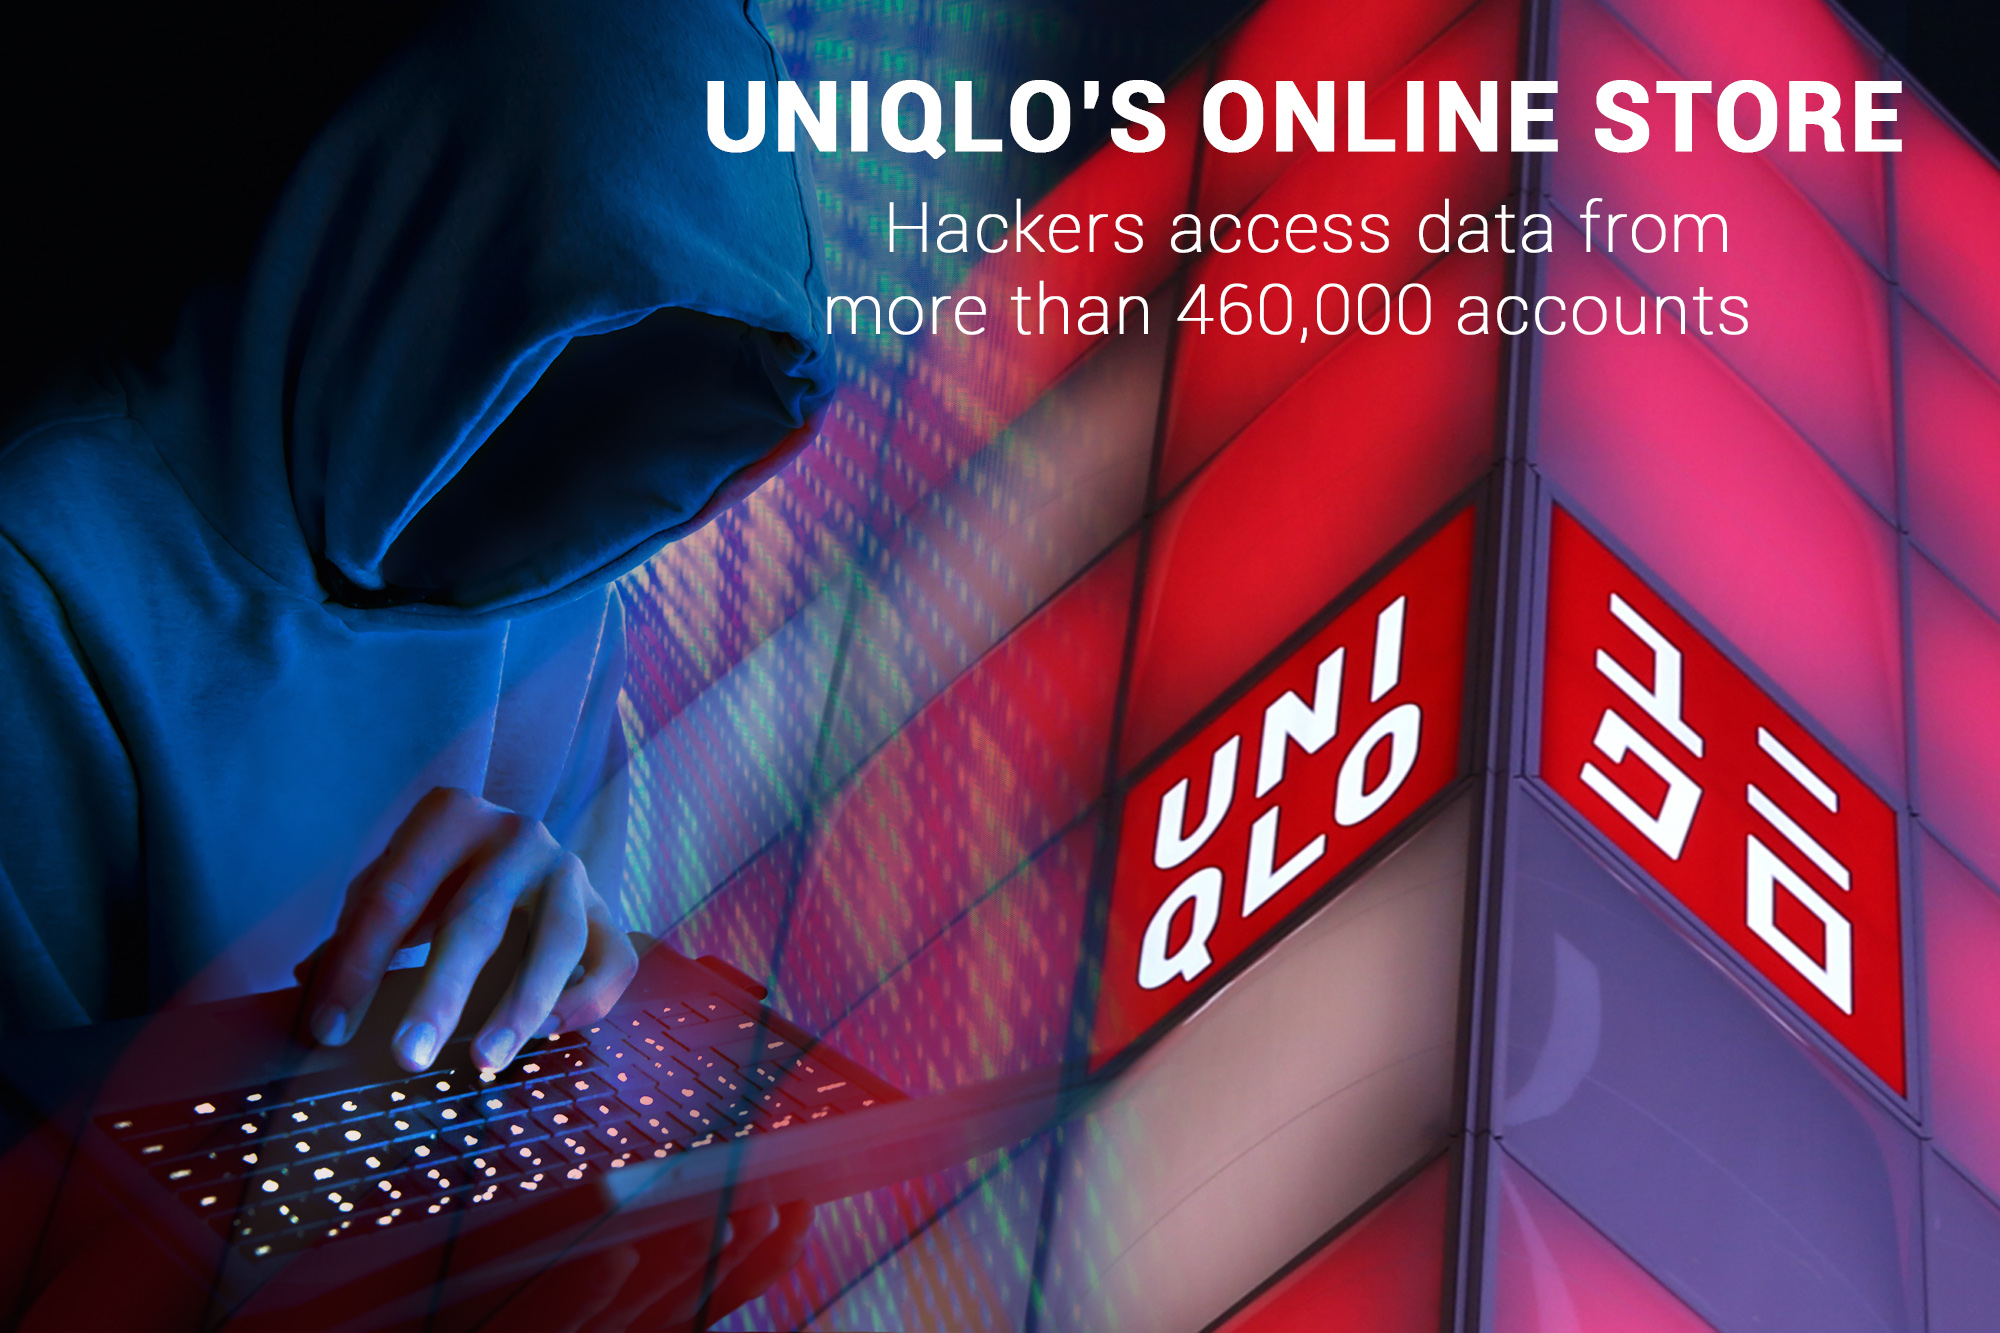 Over 460,000 Uniqlo's Online Store Accounts Hacked